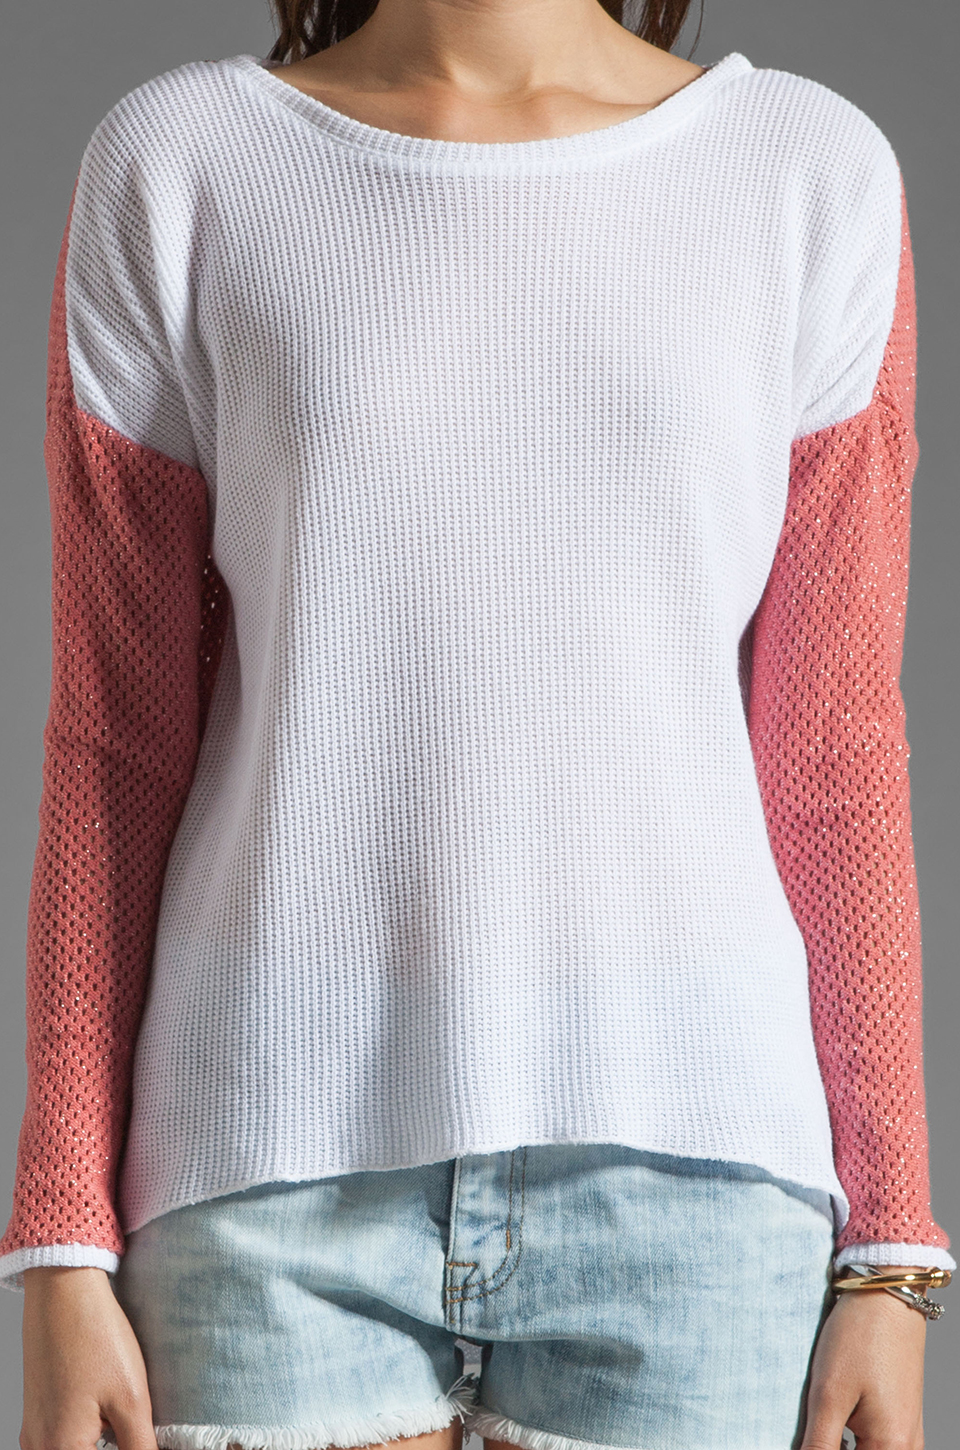 Generation Love Juliet Contrast Mesh Long Sleeve in Coral/White